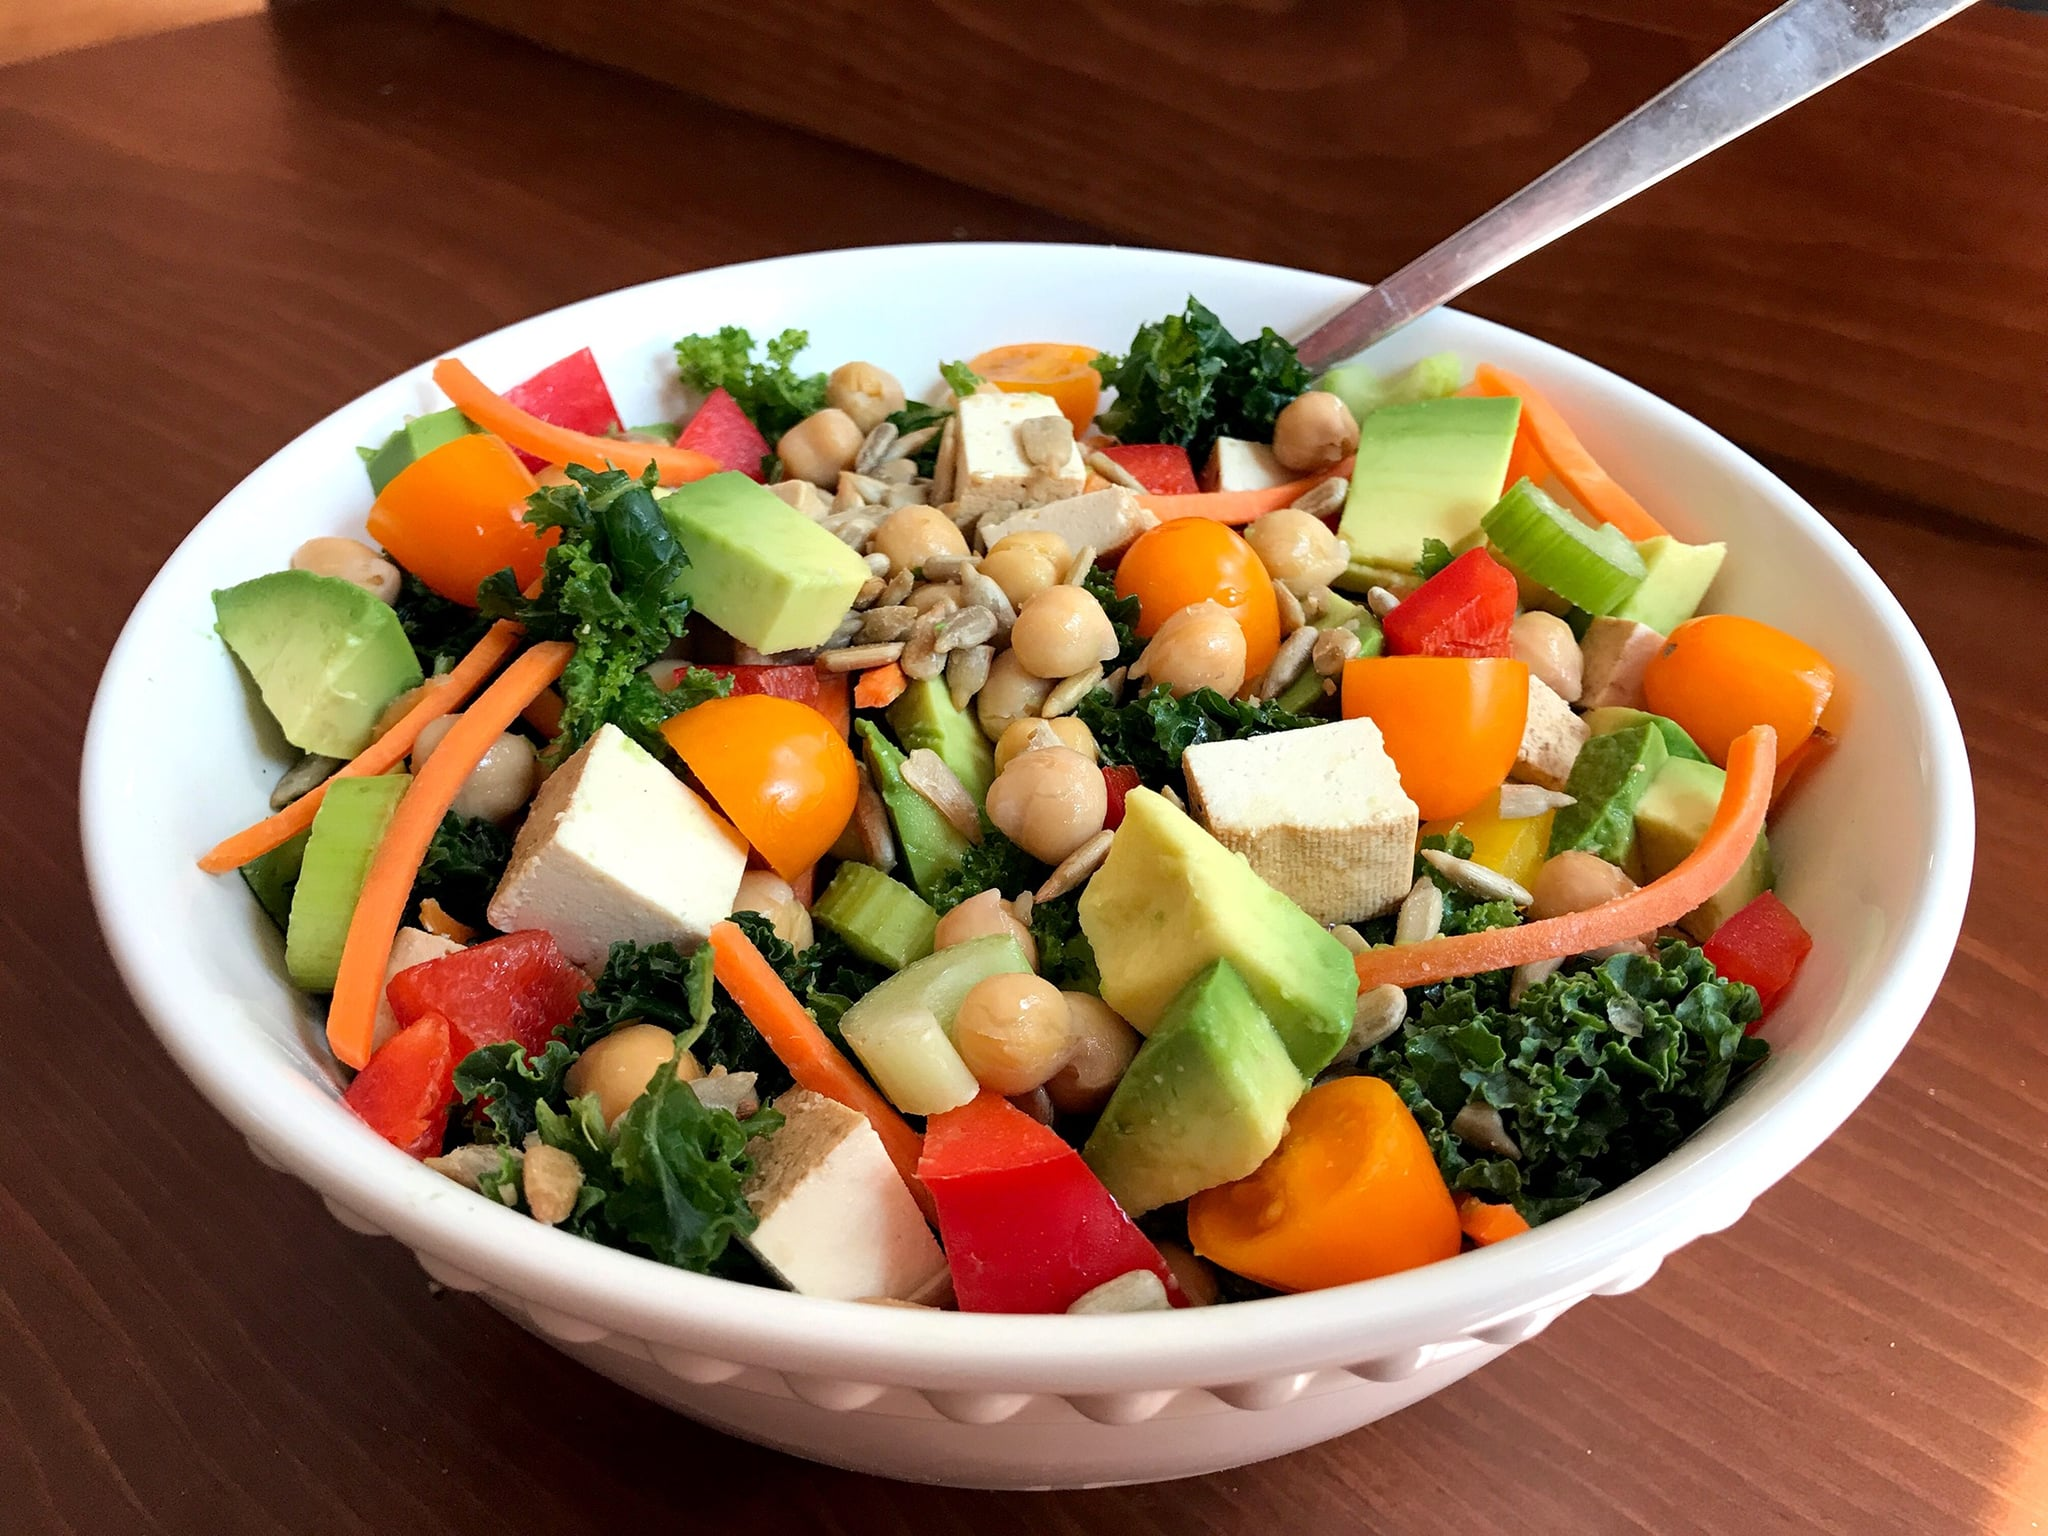 is a salad diet good to lose weight